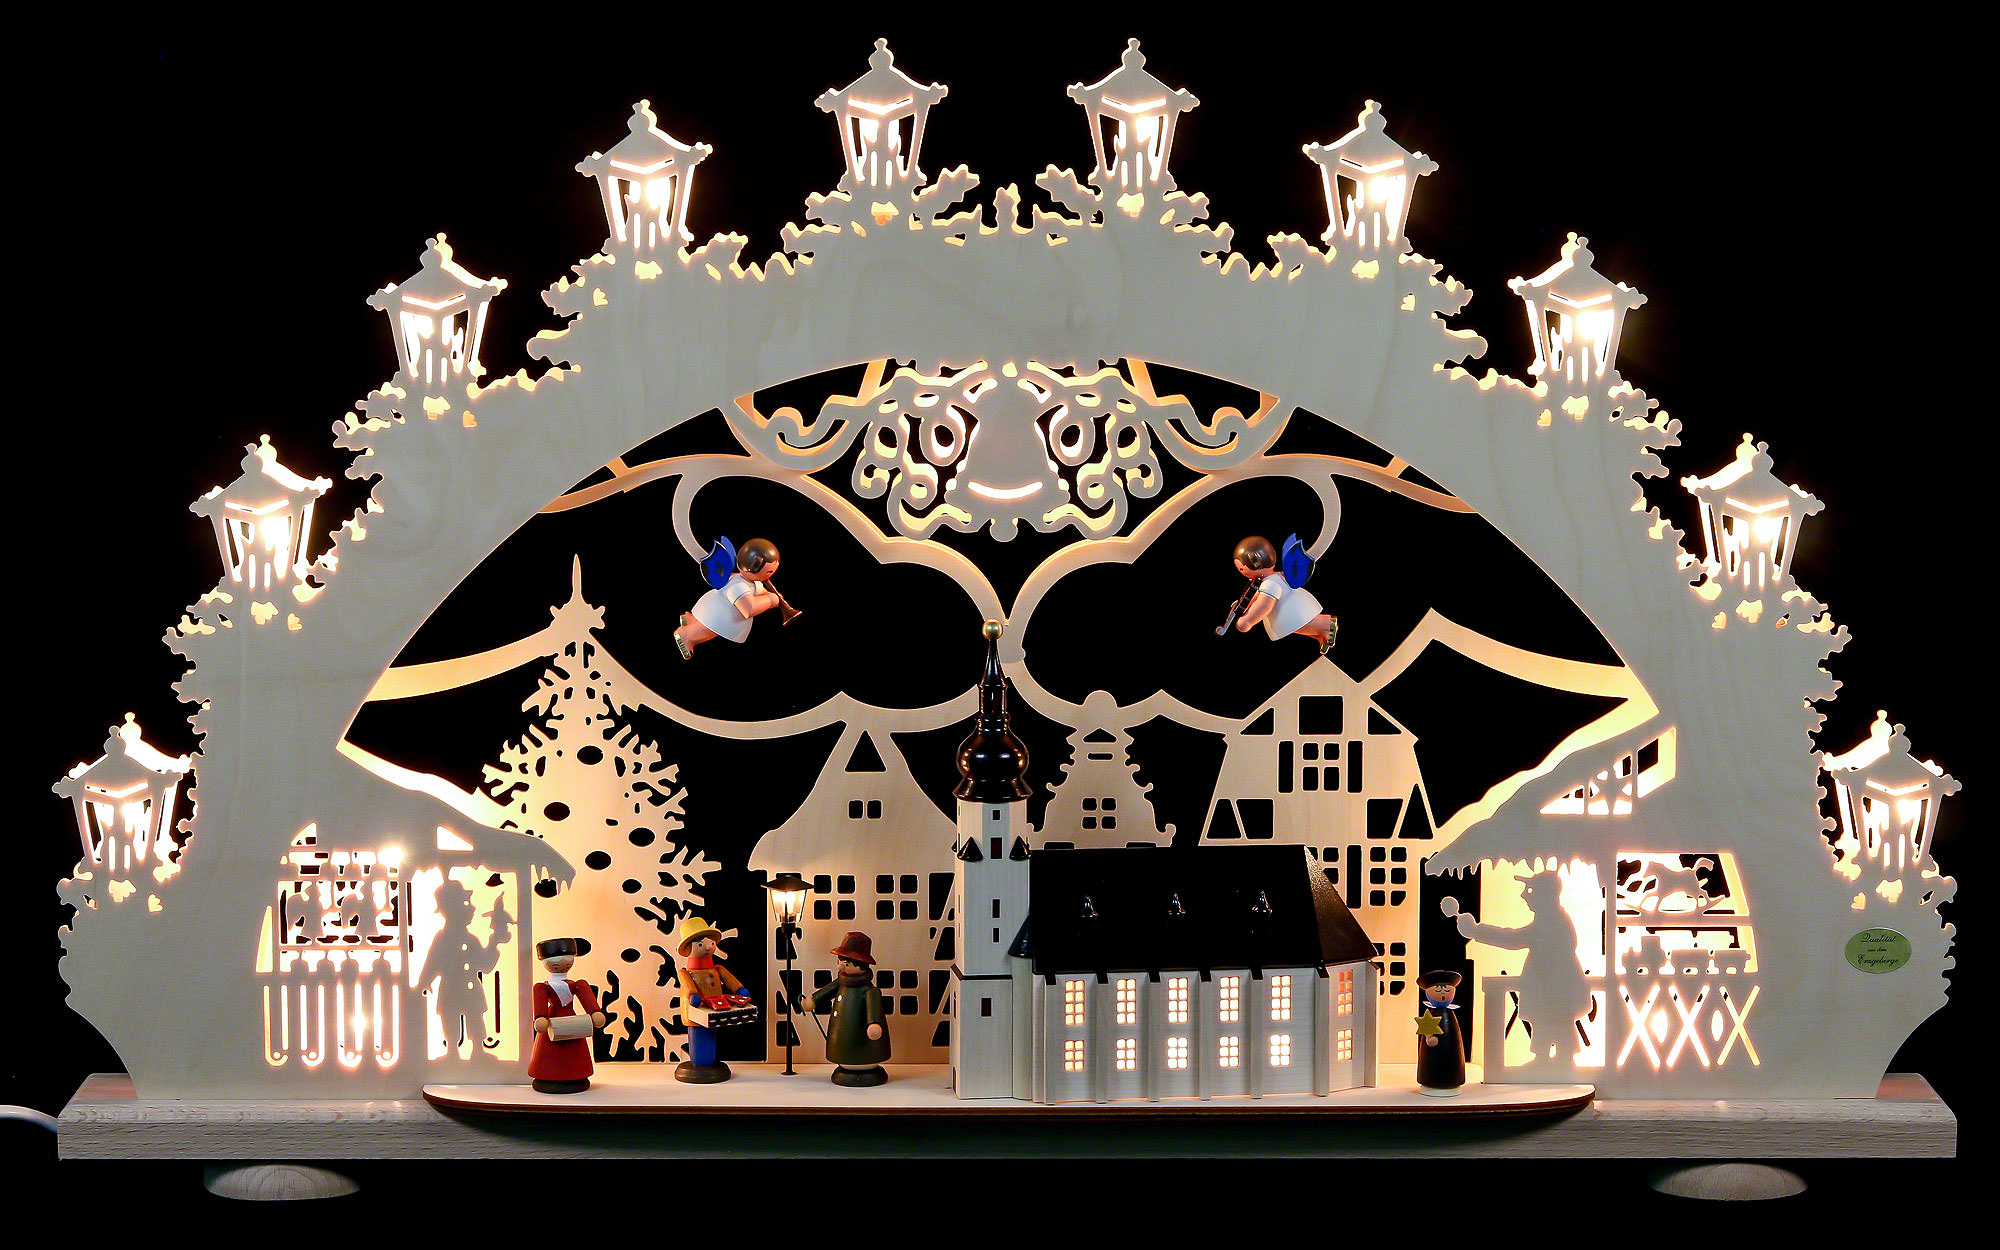 3d light arch old town christmas fair 664011 cm 43 inch - Christmas Arch Decorations